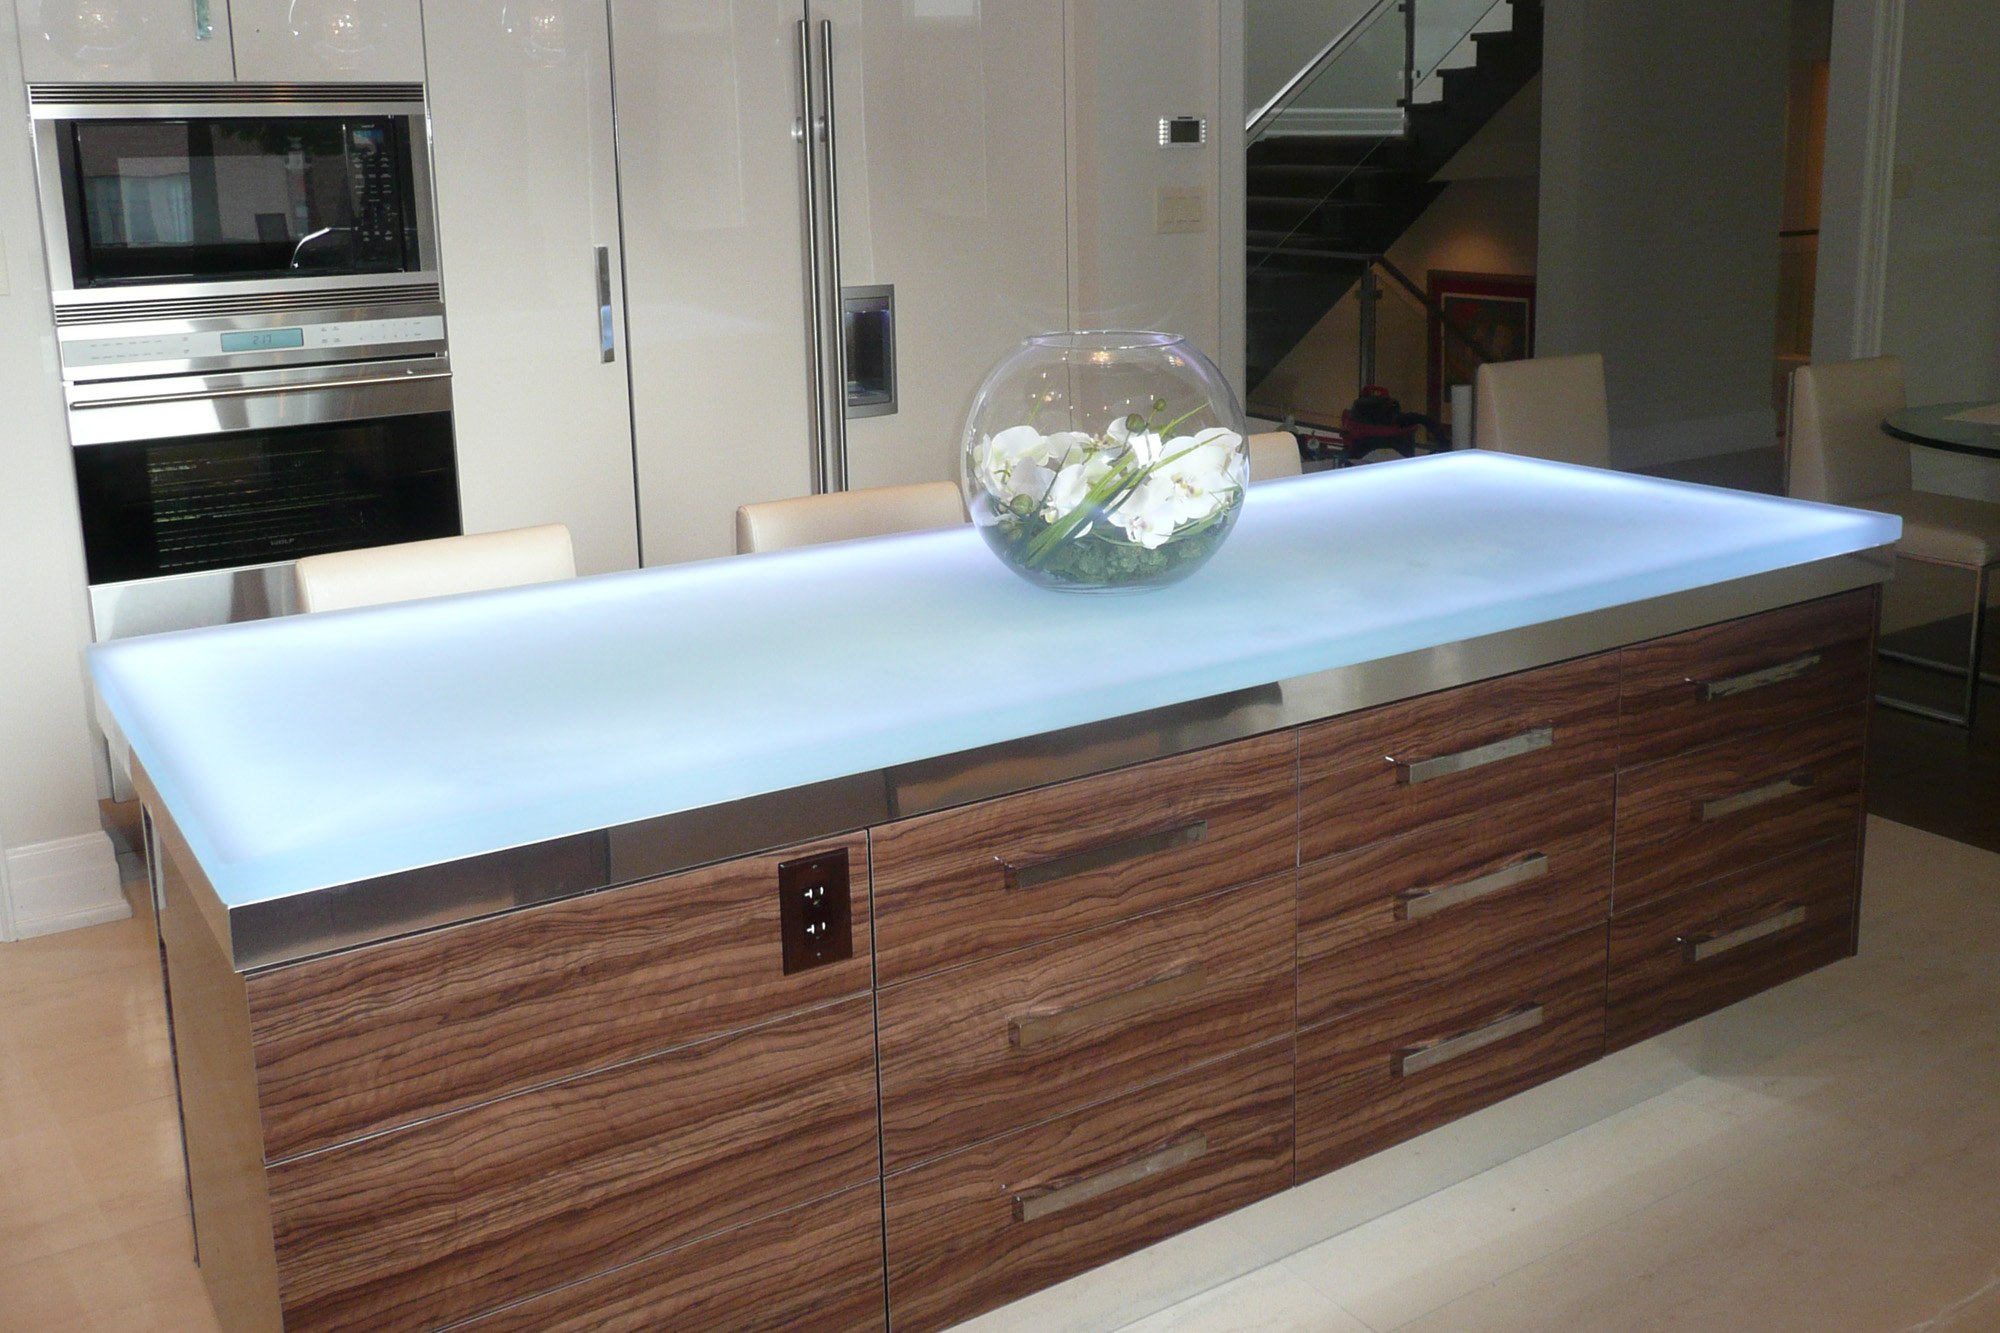 The Ultimate Luxury Touch For Your Kitchen Decor - Glass Countertops homesthetics (9)